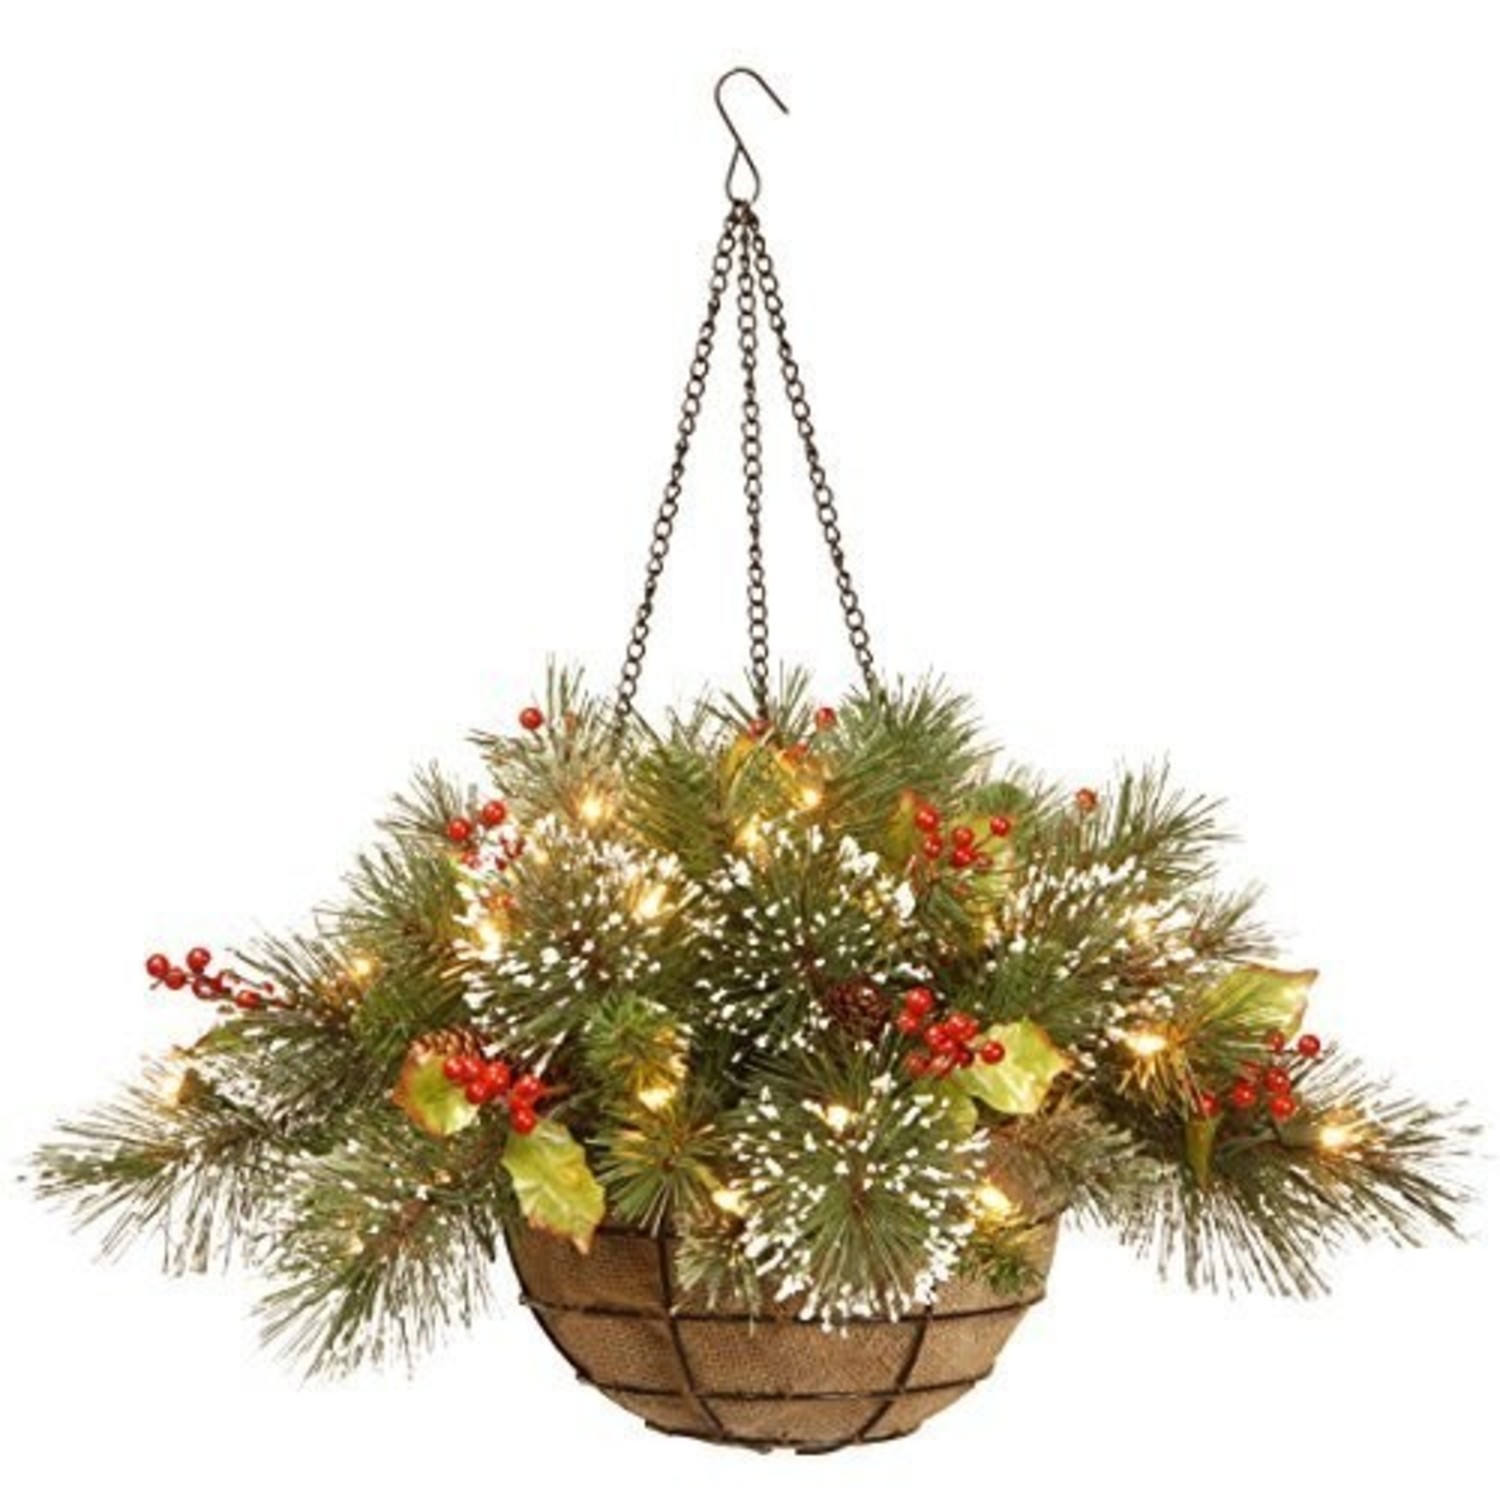 Christmas Hanging Baskets With Lights.Battery Operated Christmas Hanging Baskets With Led Lights